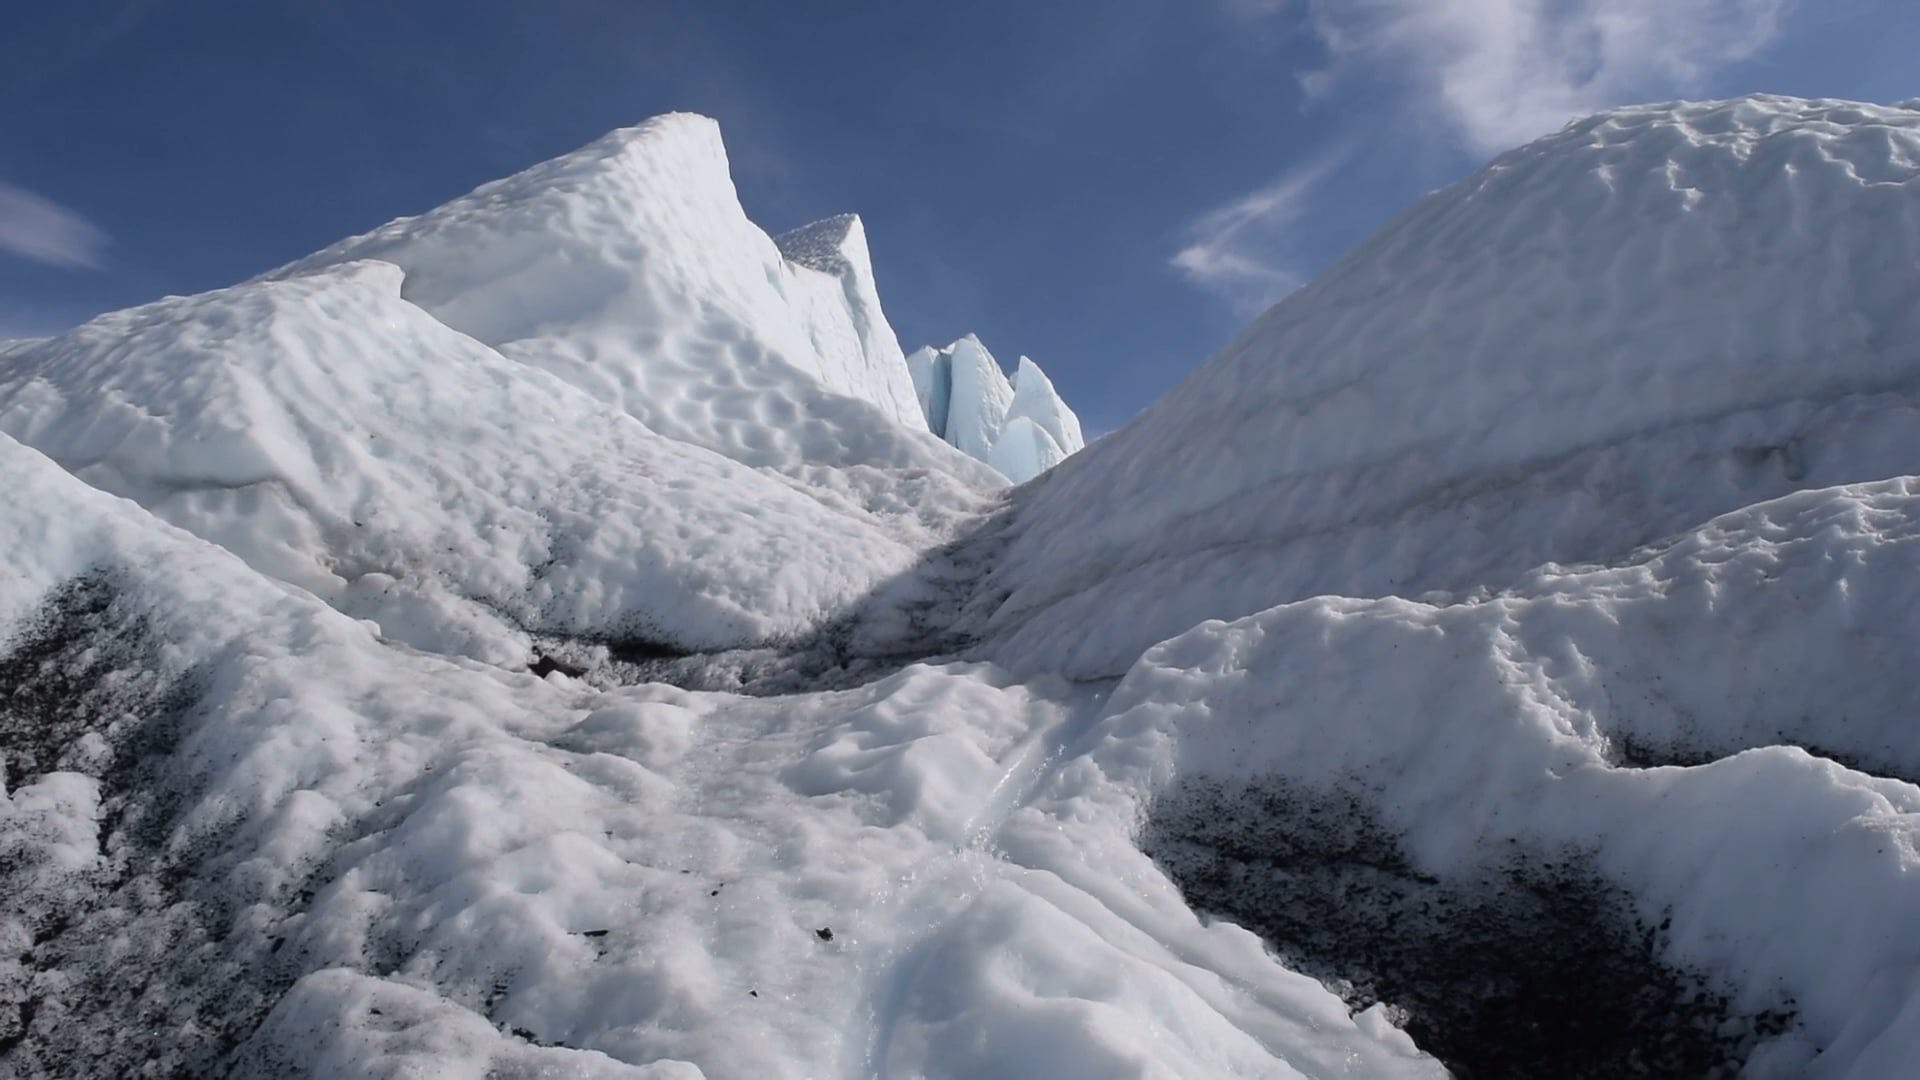 Video Footage of Icy Mountain